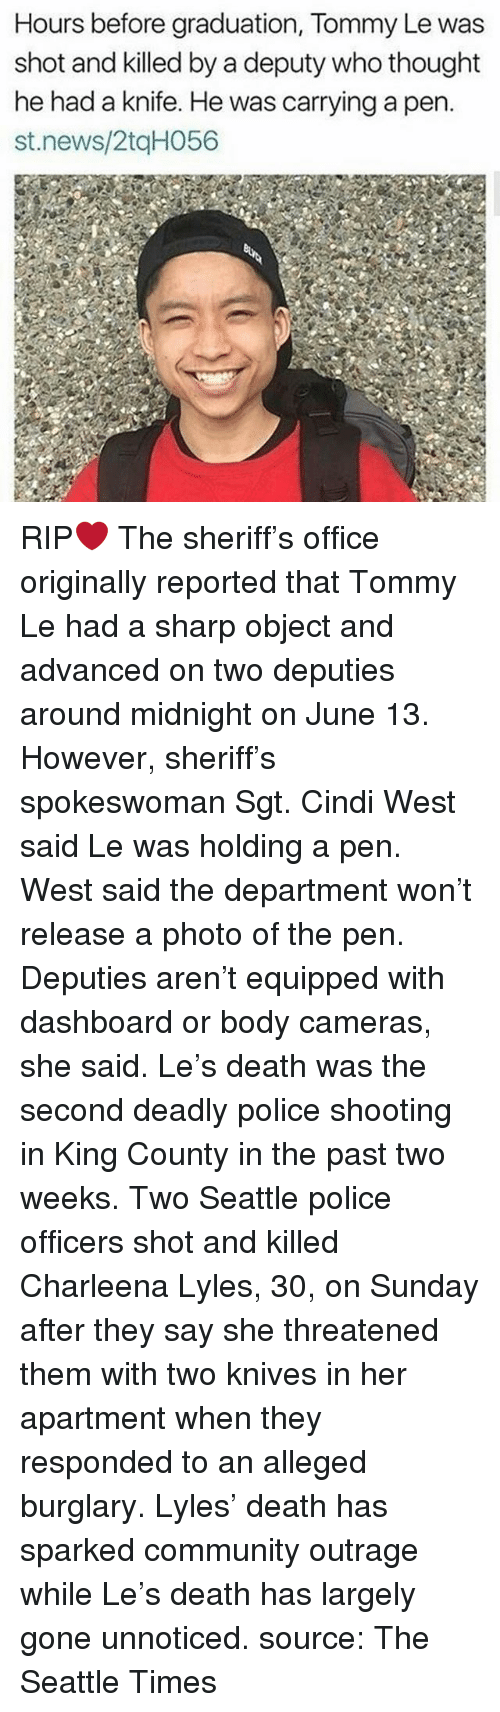 Community, Memes, and News: Hours before graduation, Tommy Le was  shot and killed by a deputy who thought  he had a knife. He was carrying a pen.  st.news/2tqH056 RIP❤️ The sheriff's office originally reported that Tommy Le had a sharp object and advanced on two deputies around midnight on June 13. However, sheriff's spokeswoman Sgt. Cindi West said Le was holding a pen. West said the department won't release a photo of the pen. Deputies aren't equipped with dashboard or body cameras, she said. Le's death was the second deadly police shooting in King County in the past two weeks. Two Seattle police officers shot and killed Charleena Lyles, 30, on Sunday after they say she threatened them with two knives in her apartment when they responded to an alleged burglary. Lyles' death has sparked community outrage while Le's death has largely gone unnoticed. source: The Seattle Times